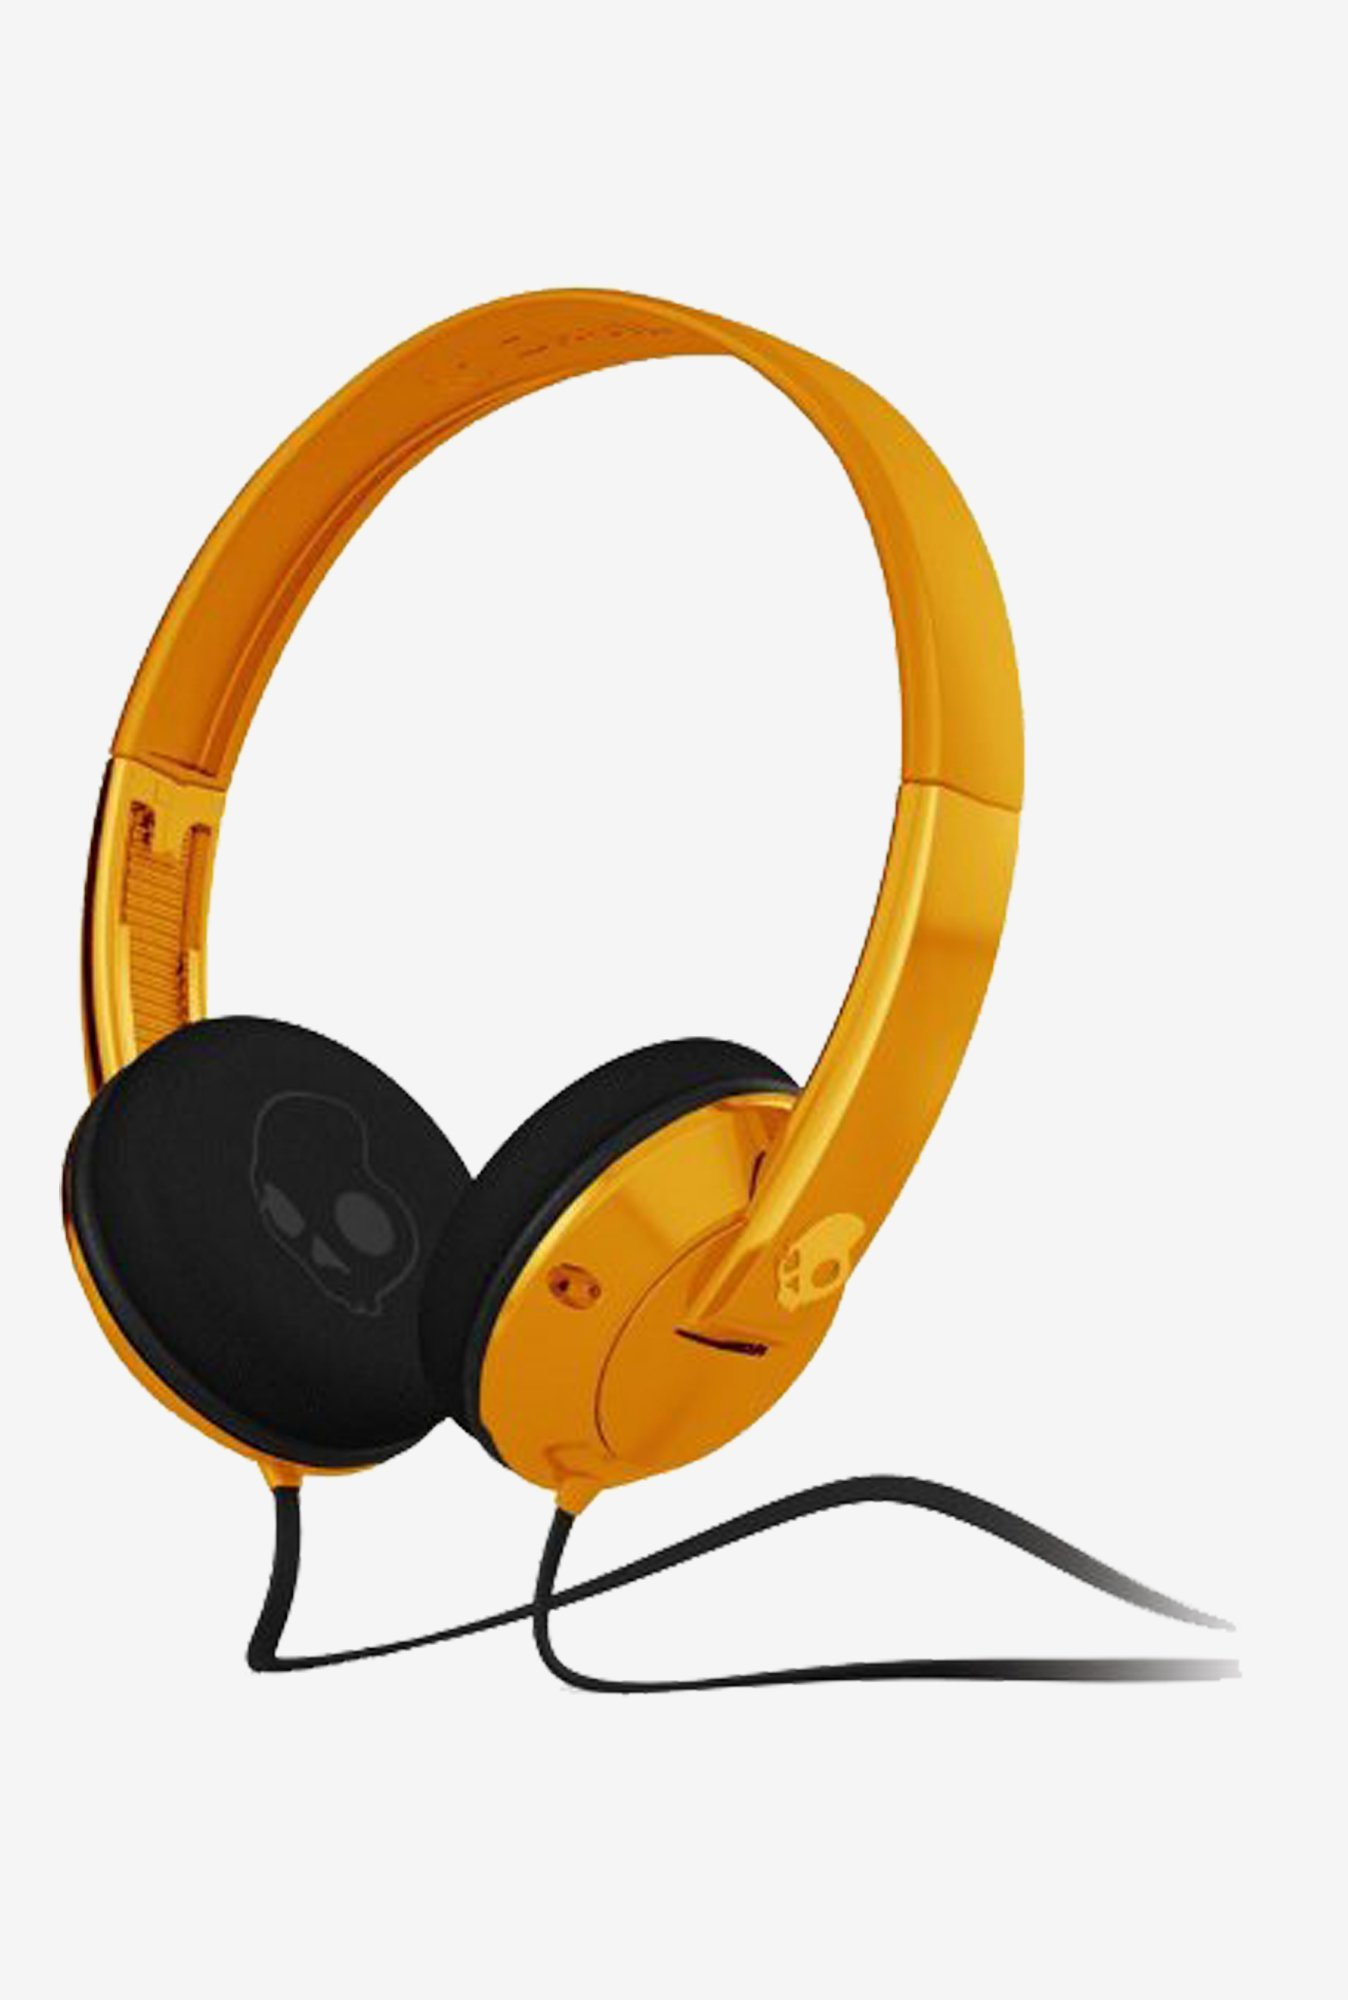 Skullcandy SGURFZ-085 Uprock On the Ear Headphone (Orange)